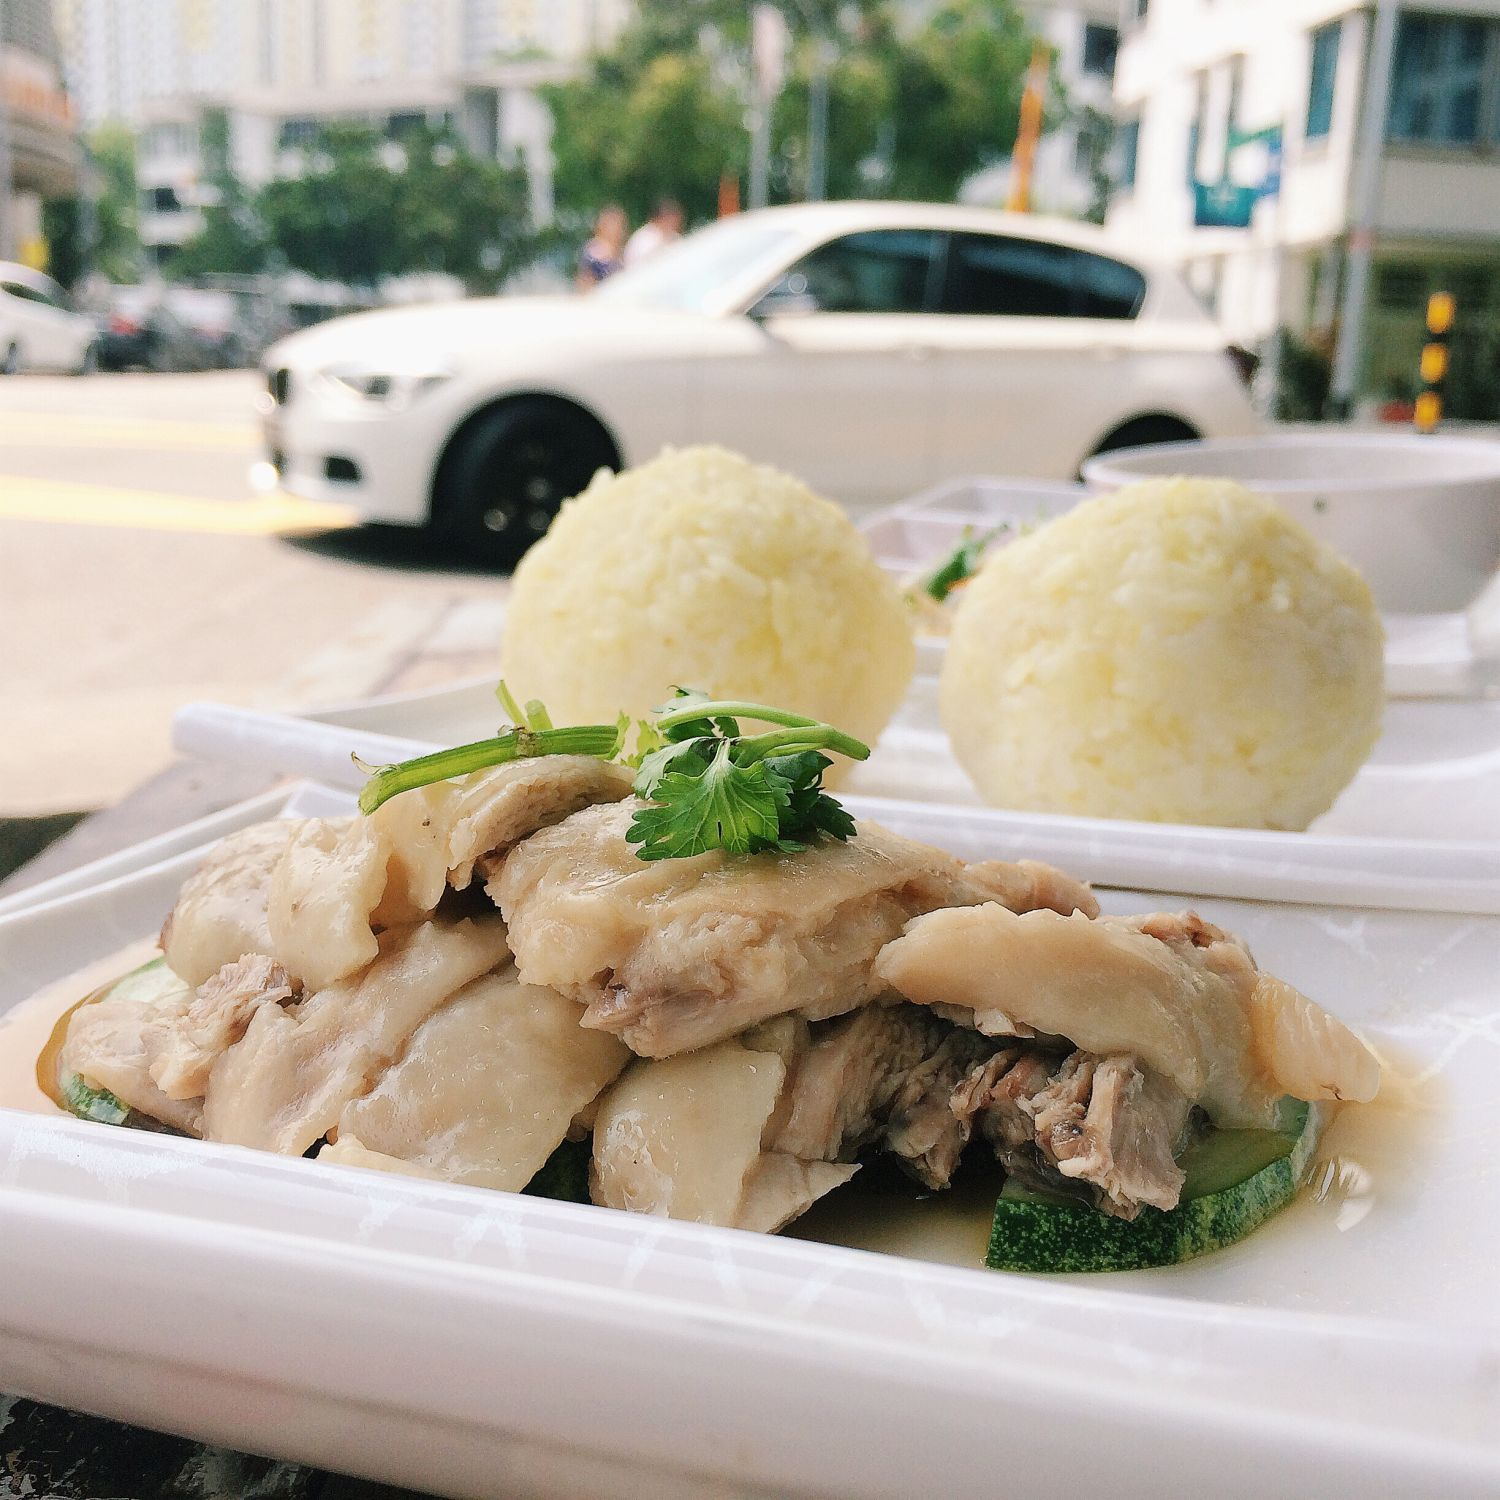 Hainanese Chicken Rice Balls - The Tiong Bahru Club Singapura